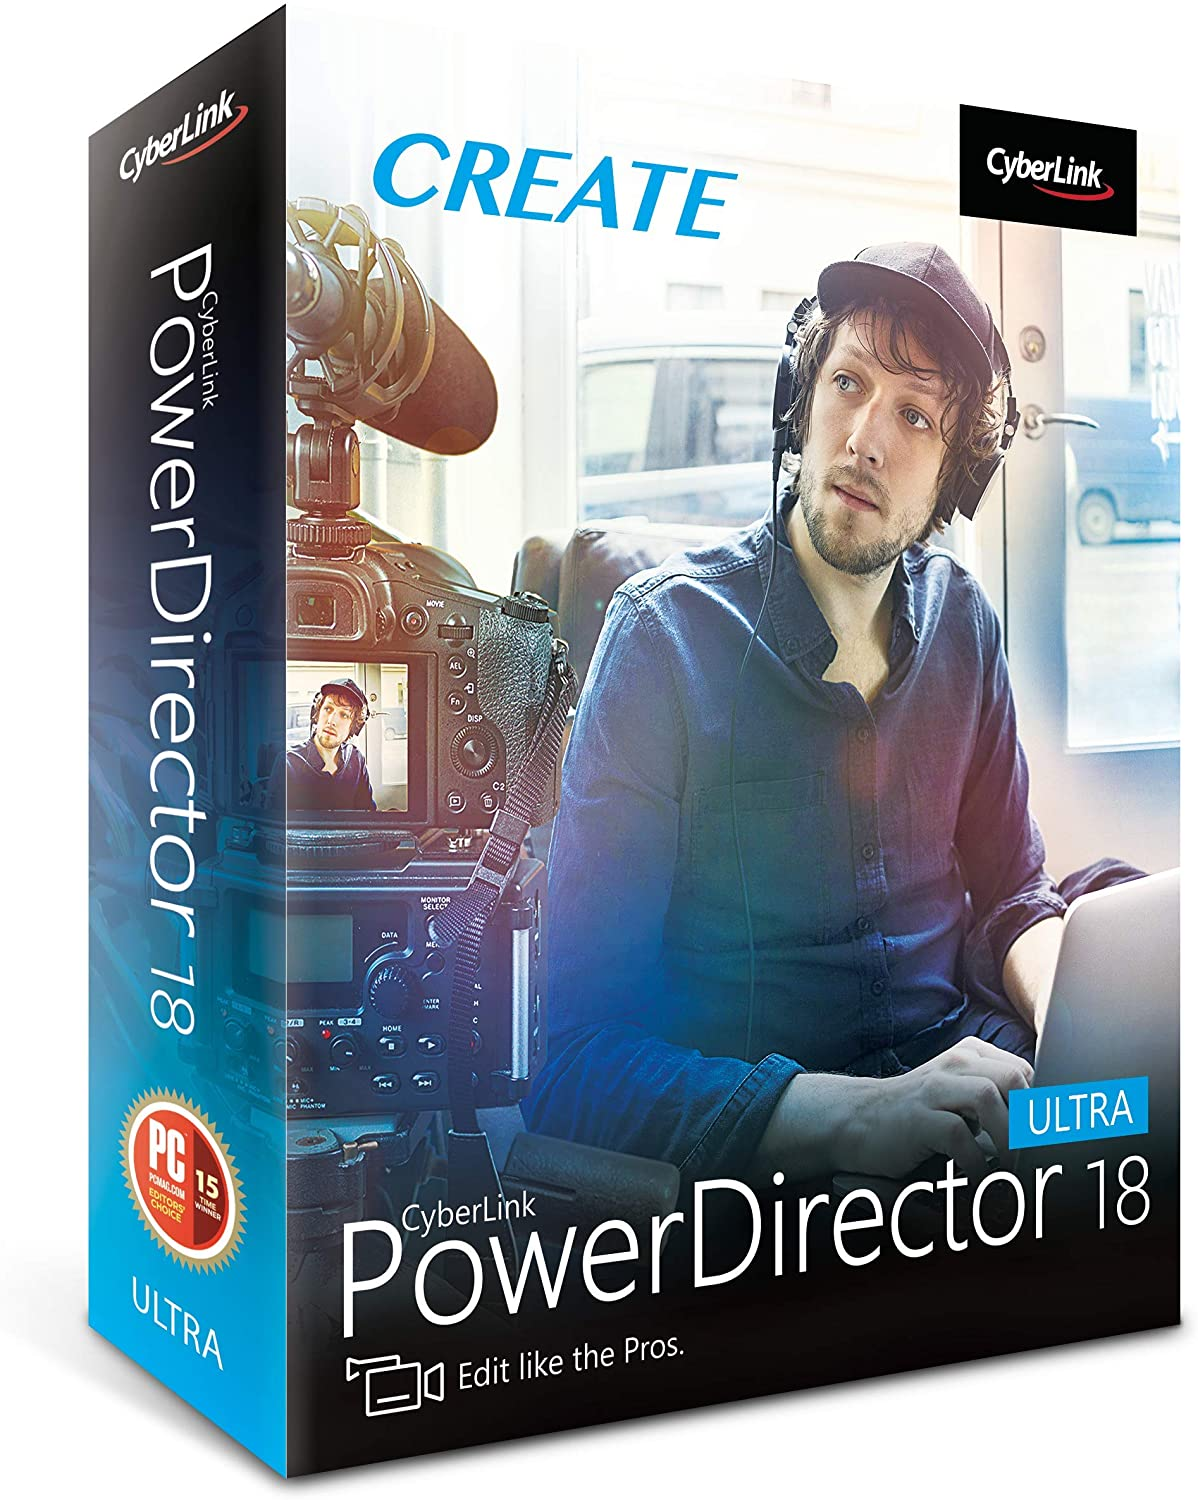 6 Best video editing software for beginners. 7